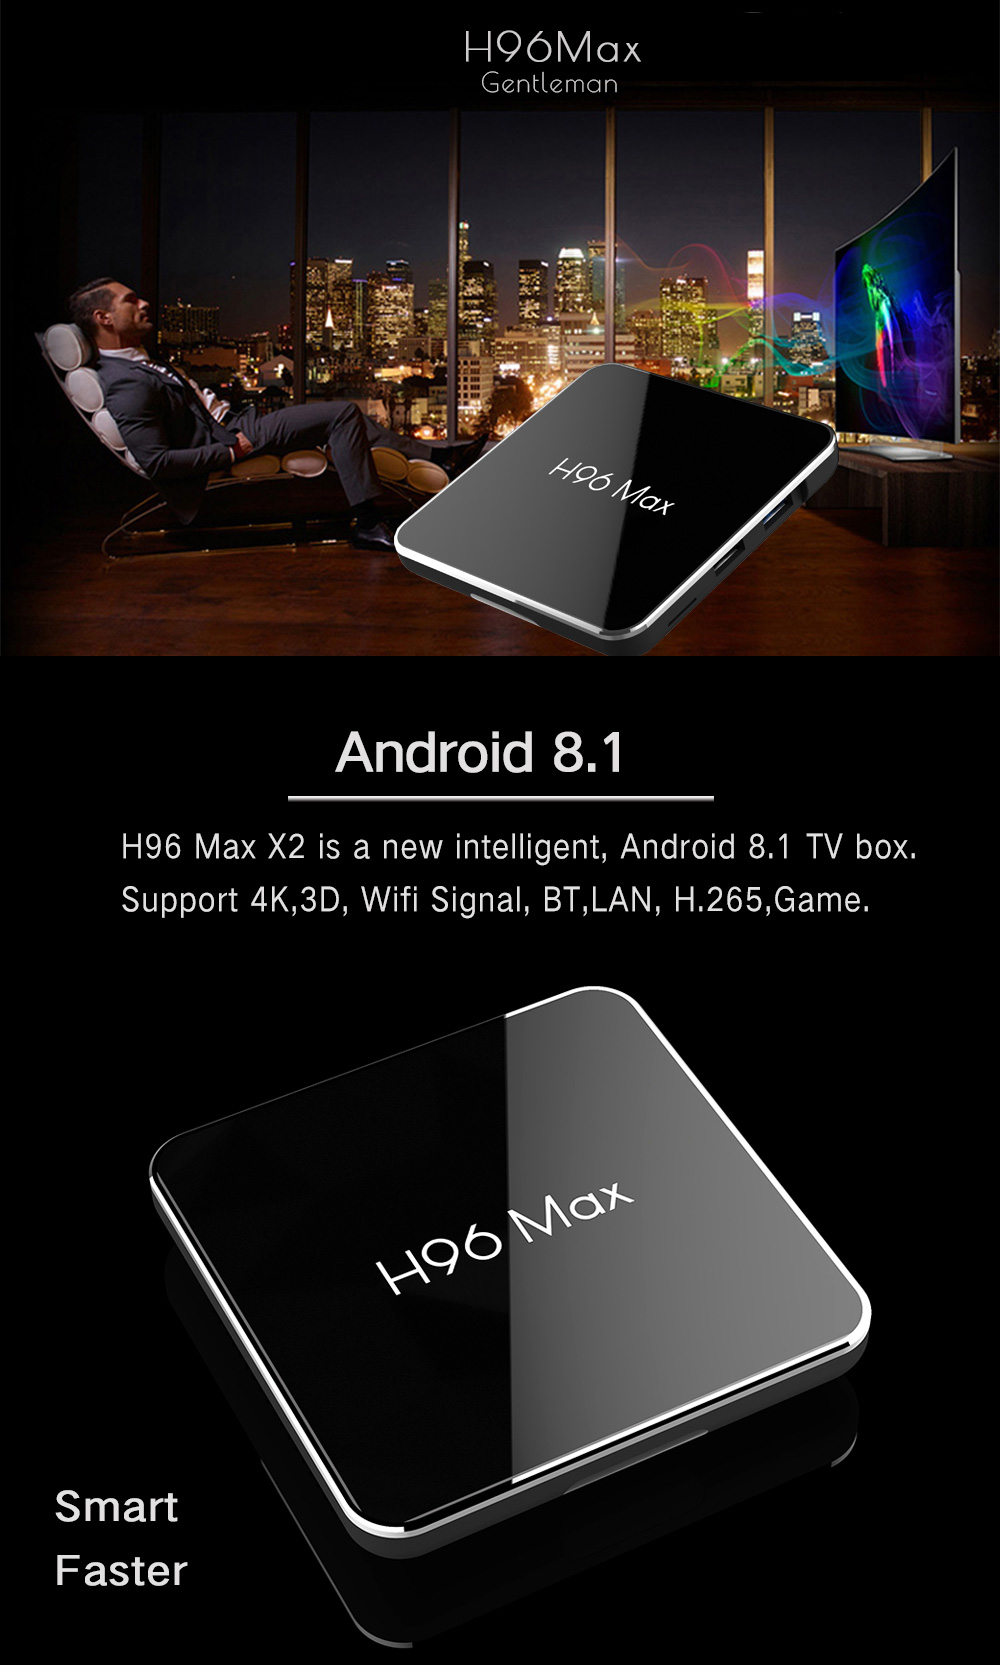 H96 Max X2 S905X2 4GB DDR4 RAM 64GB ROM 4K Android 8.1 5G WiFi USB3.0 TV BOX